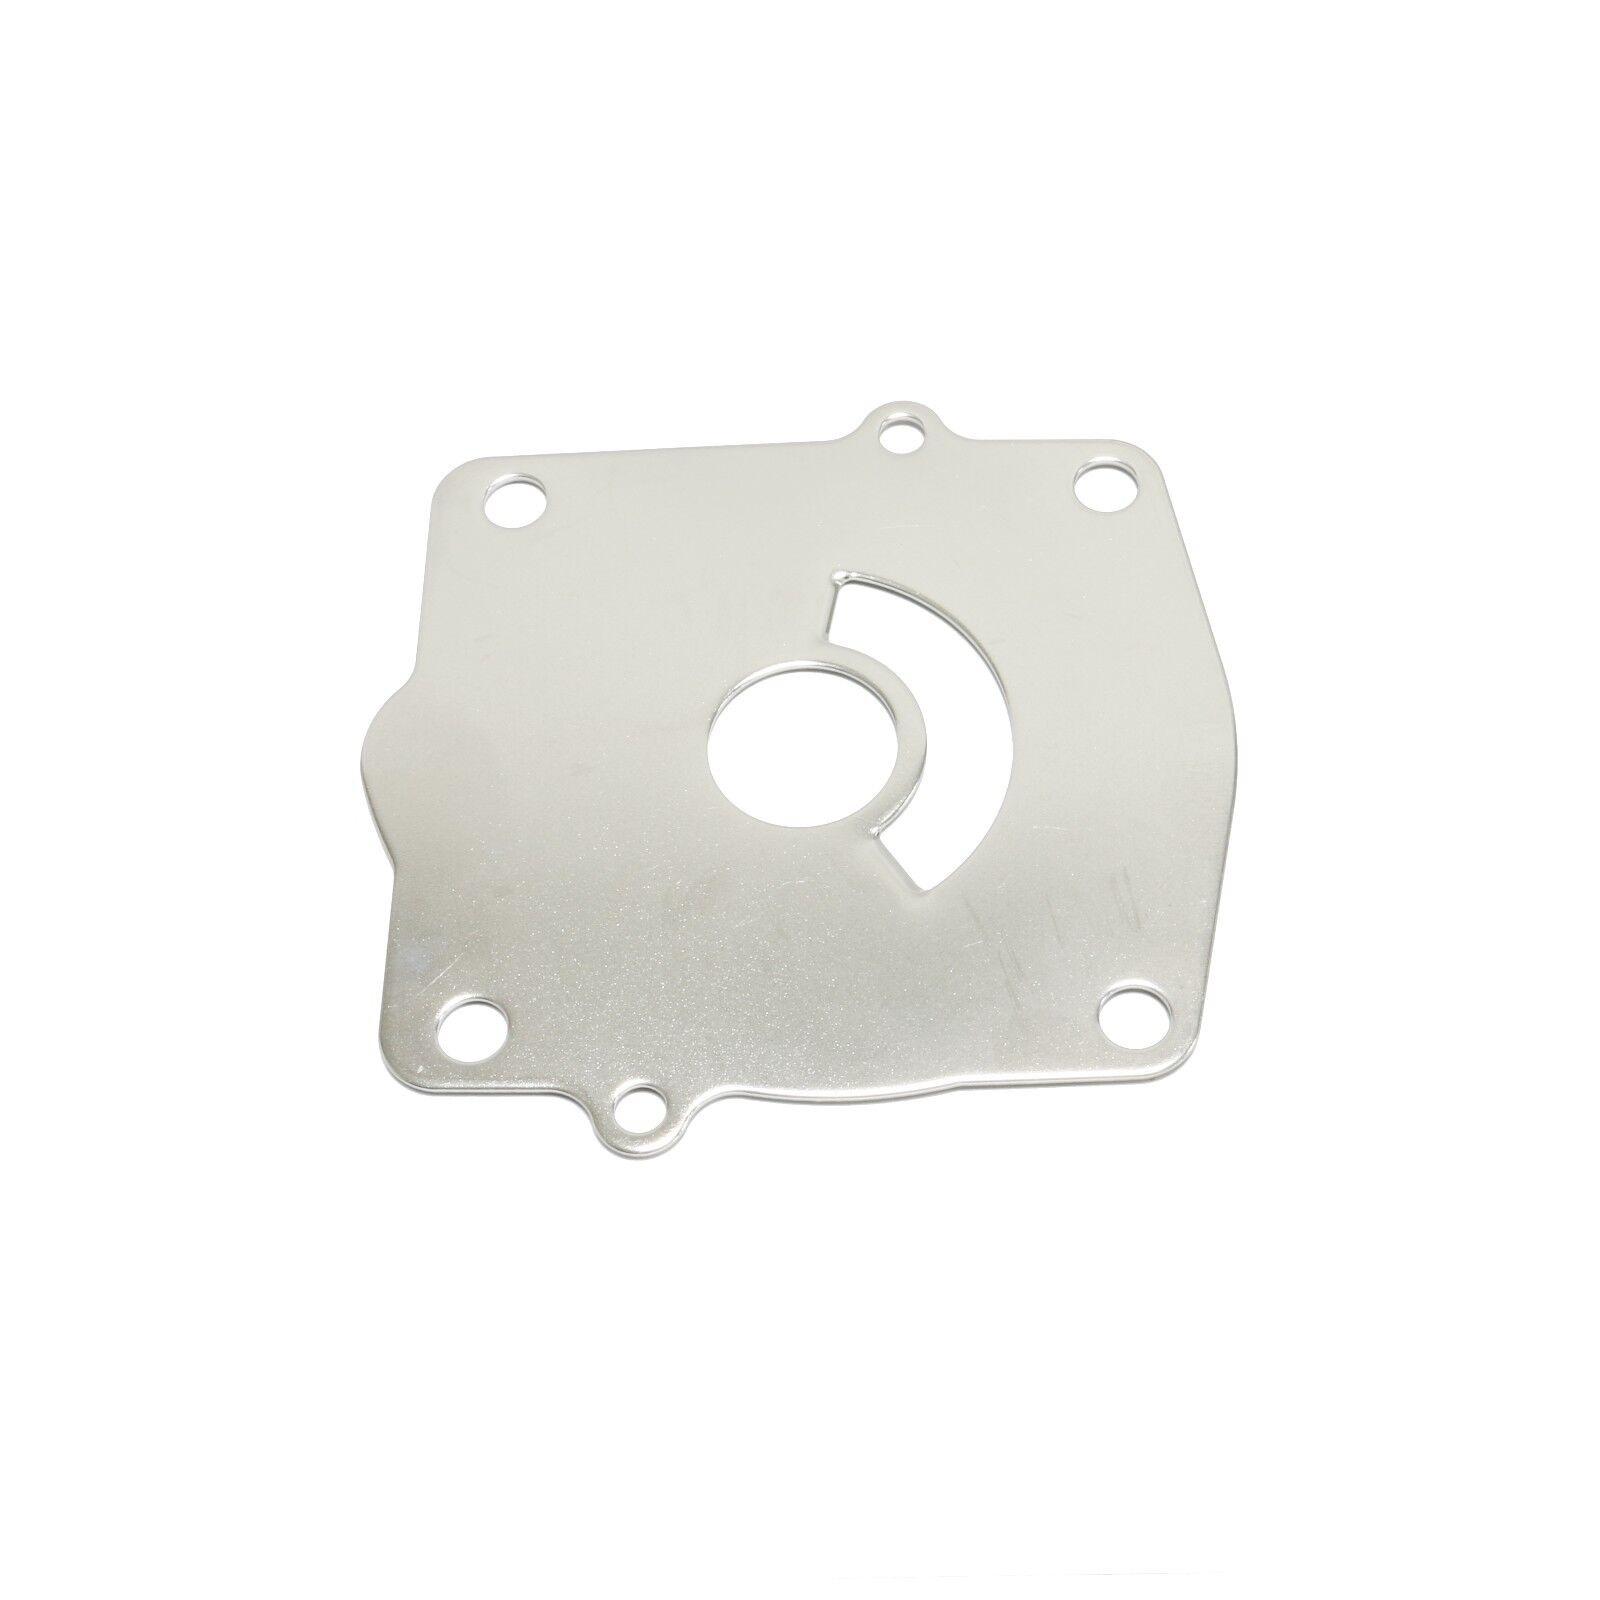 Auto Parts & Accessories Water Pump Repair Kit for Yamaha Outboard ...